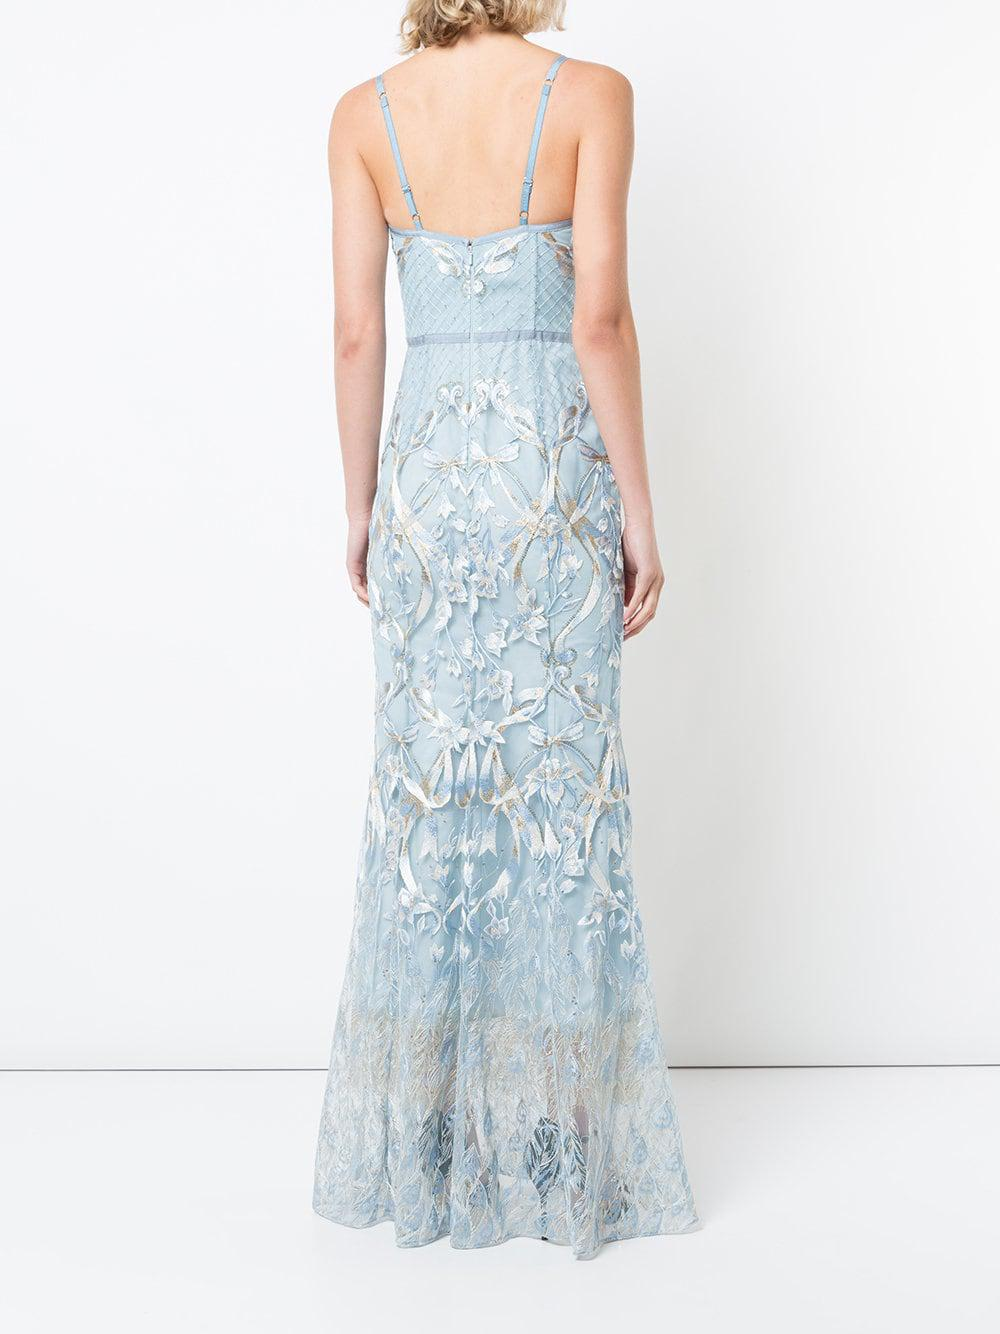 Lyst - Marchesa Notte Embroidered Corset Gown in Blue